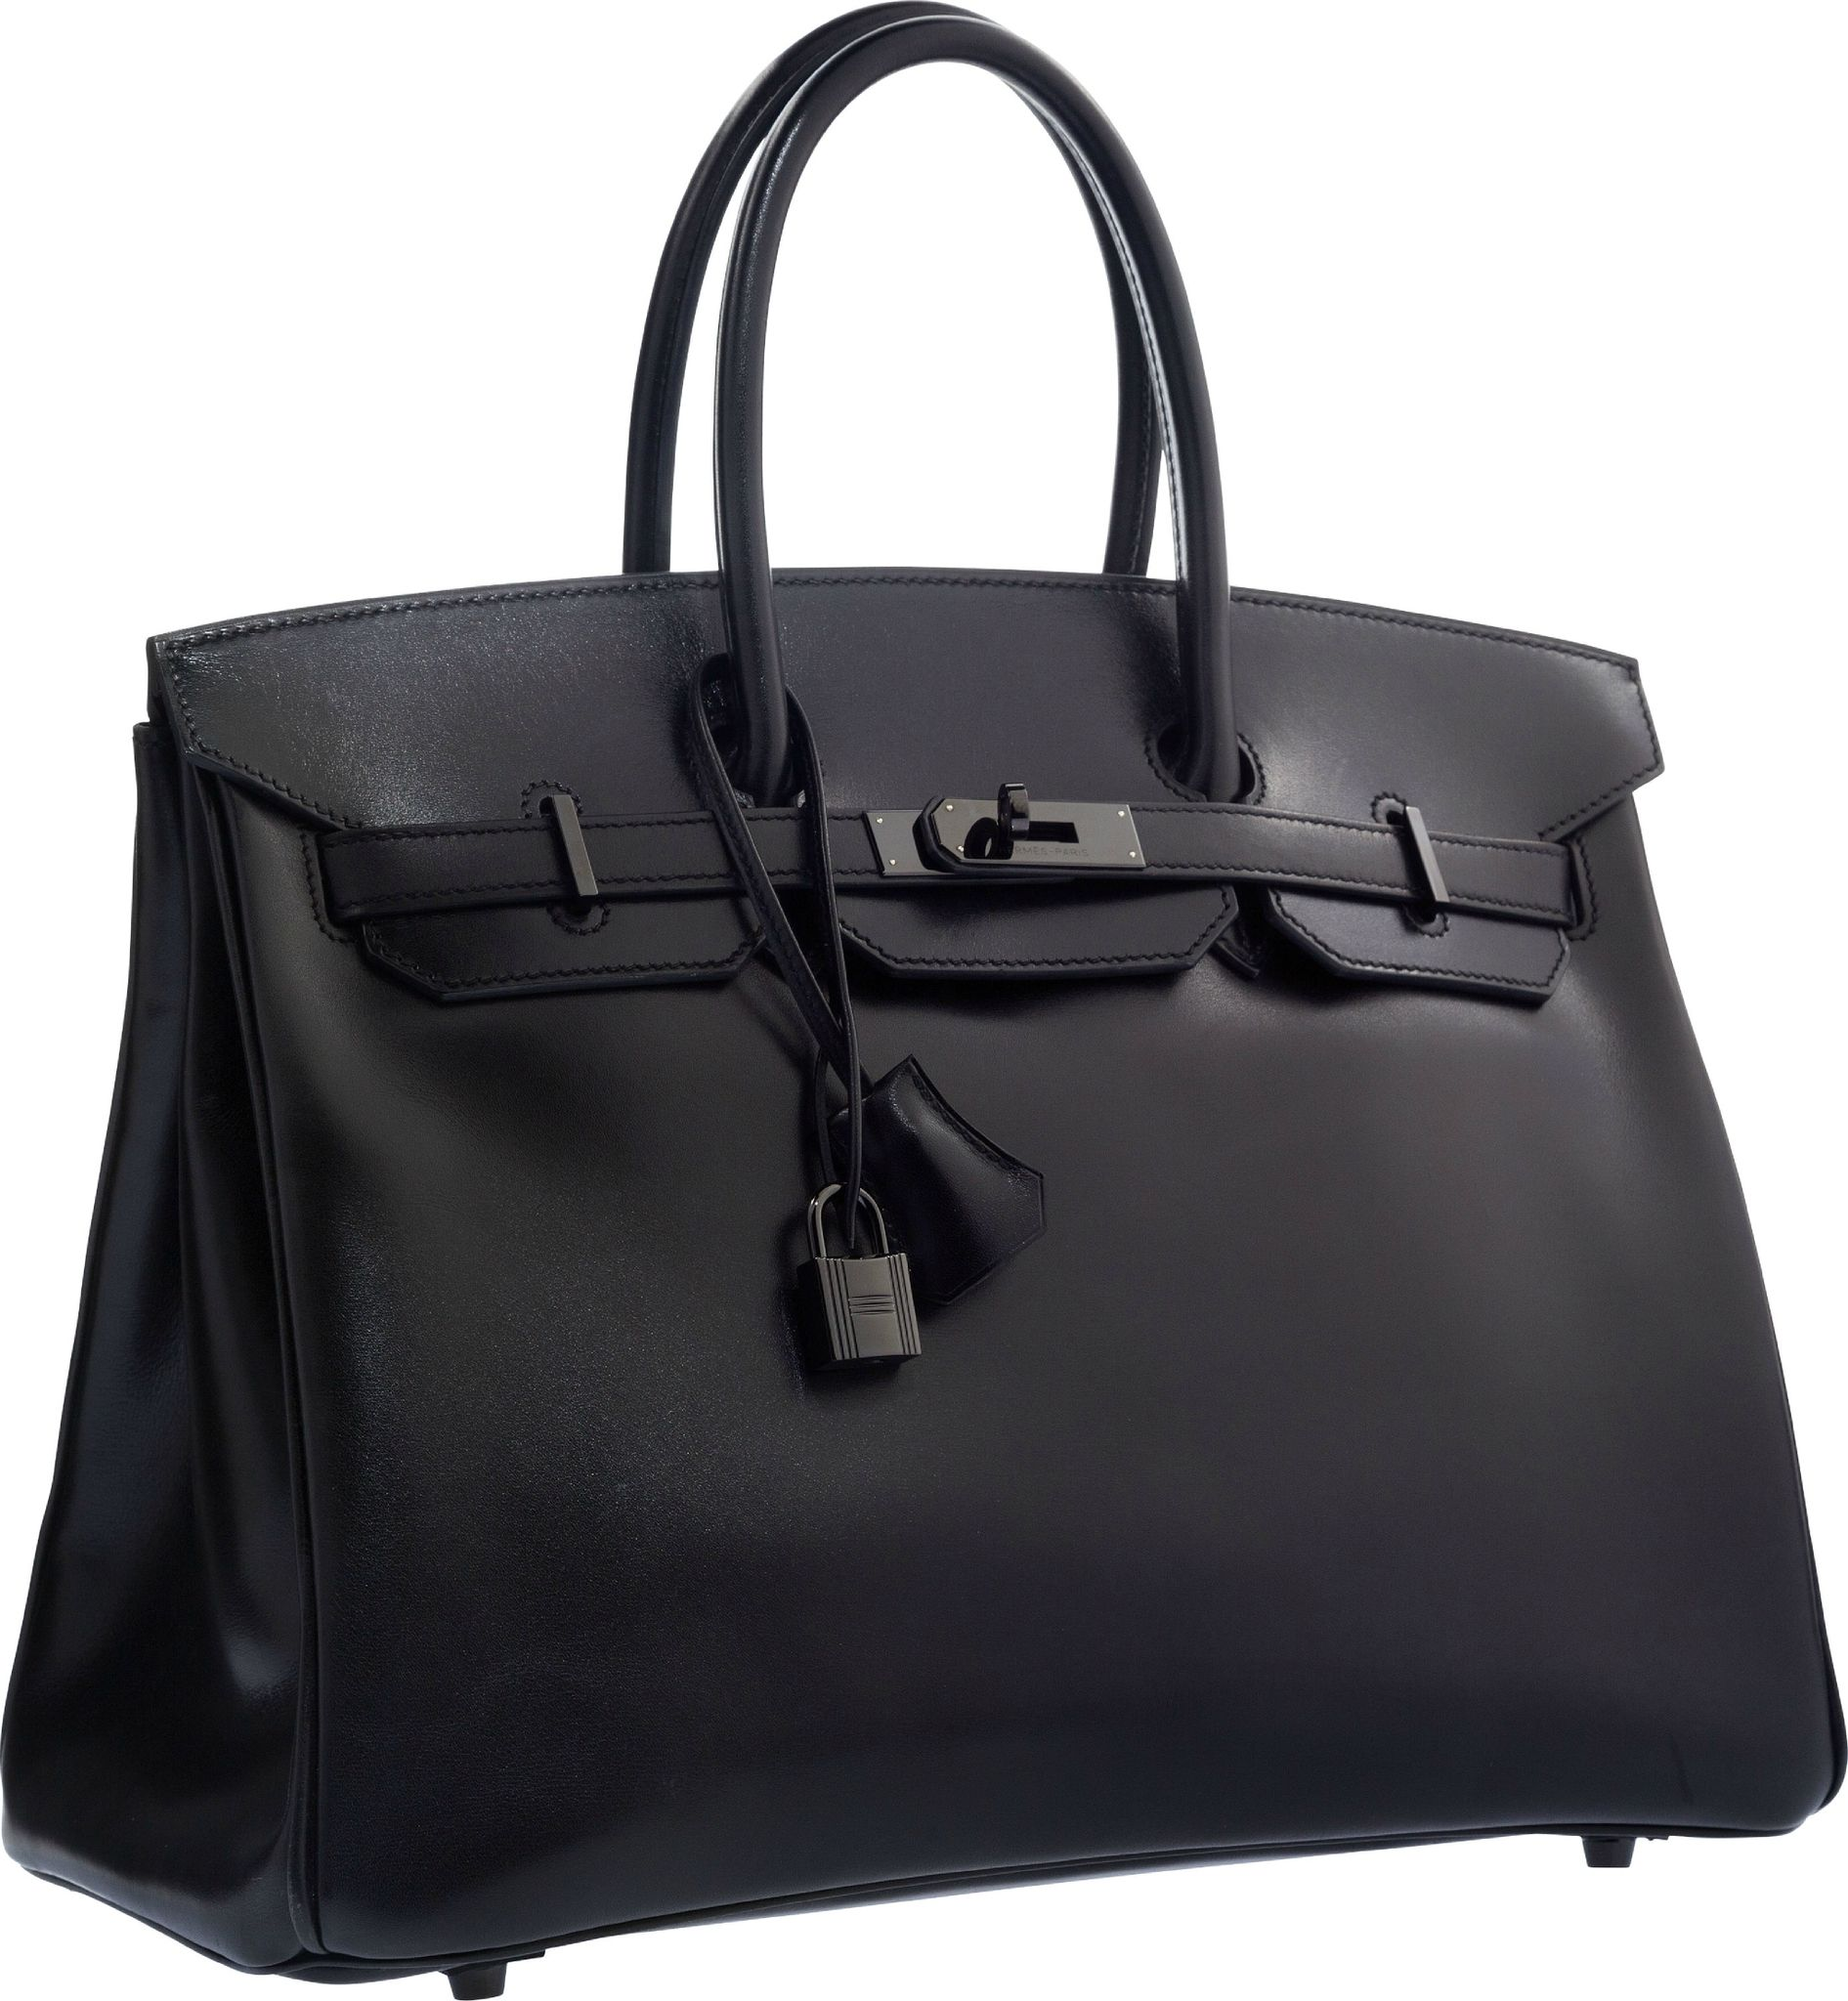 Hermès Limited Edition 35cm So Black Calf Box Leather Birkin Bag with PVD  Hardware. 286d2b13d8a0f